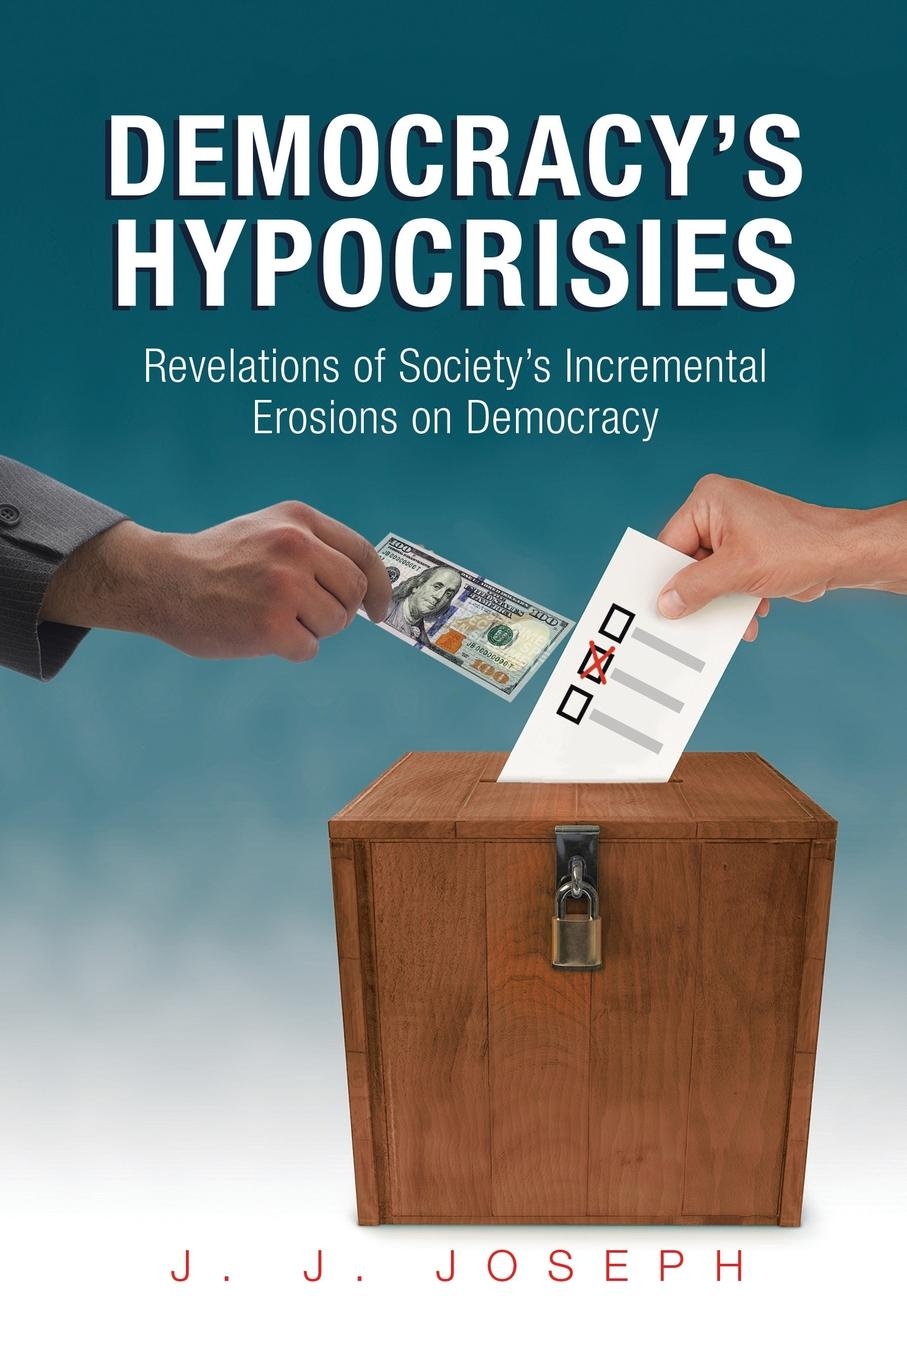 Фото - J. J. Joseph Democracy's Hypocrisies. Revelations of Society's Incremental Erosions on Democracy peregrine worsthorne democracy needs aristocracy